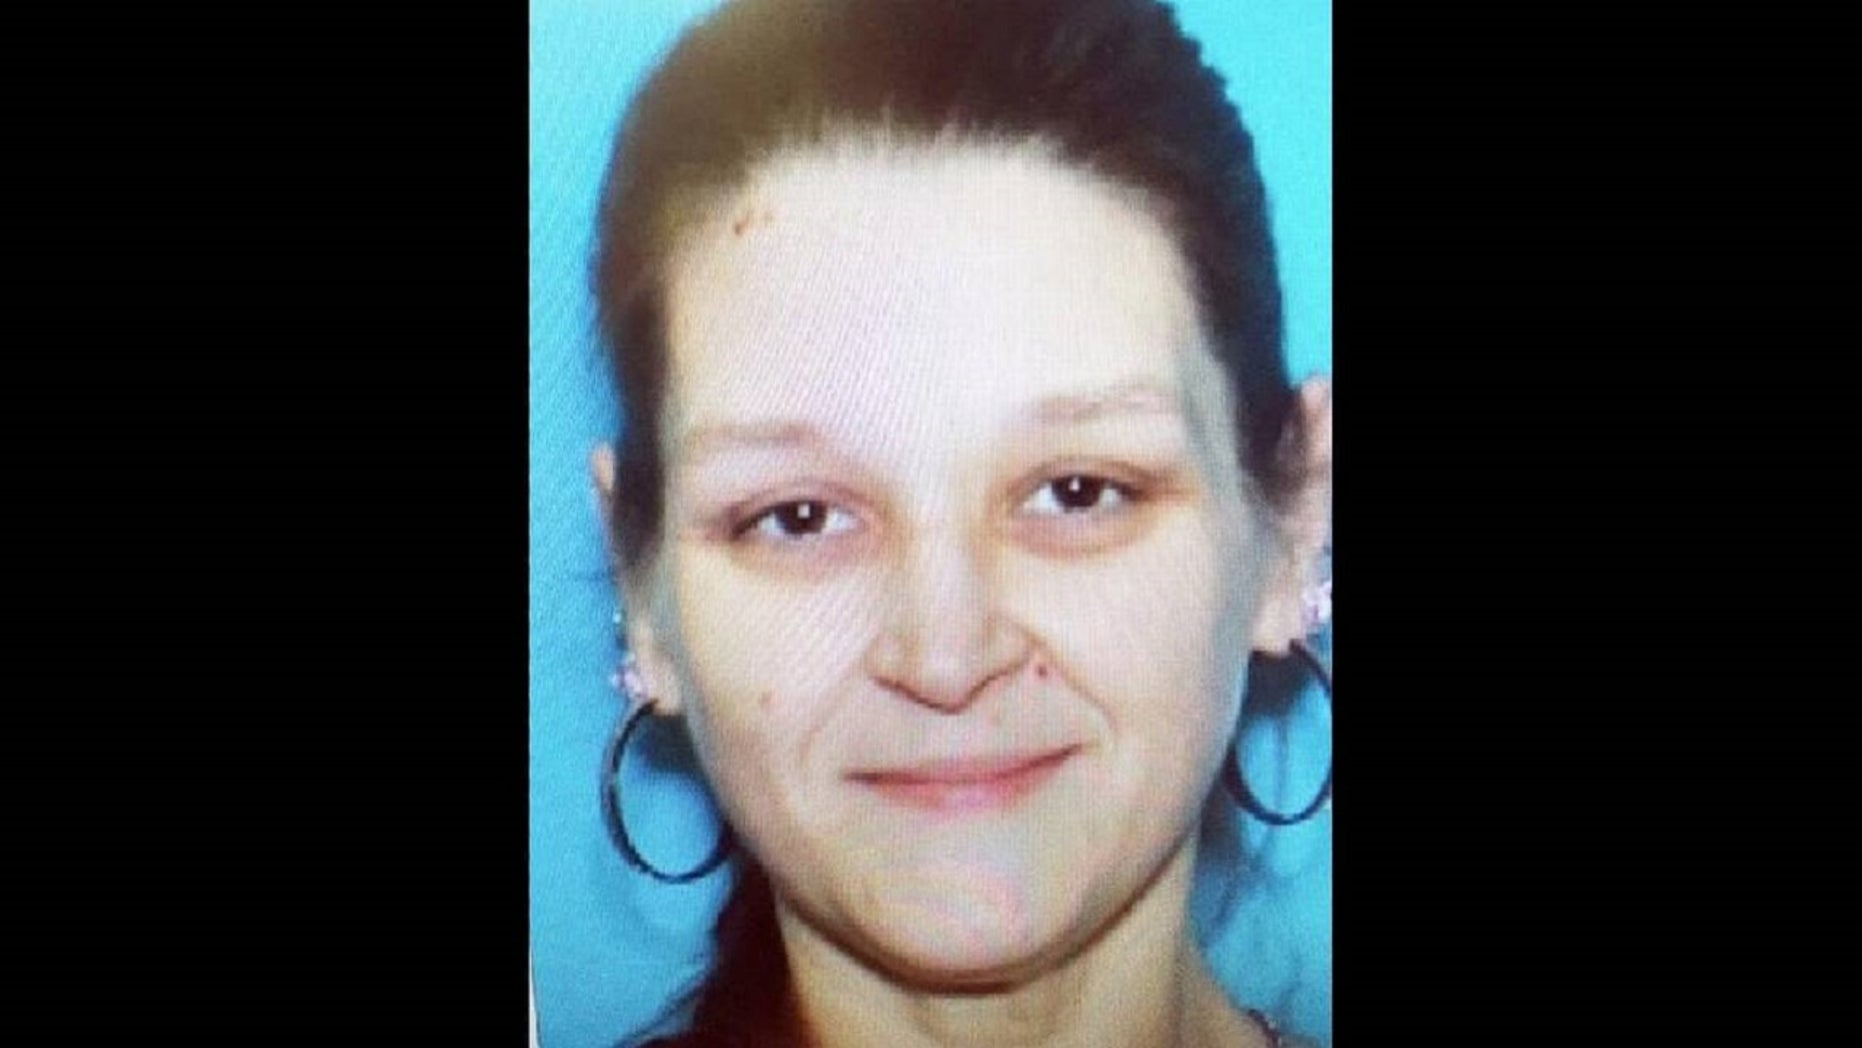 RachelEutsey36, was charged with attempted homicide, aggravated assault, and child endangerment in the shooting of her husband, authorities say.